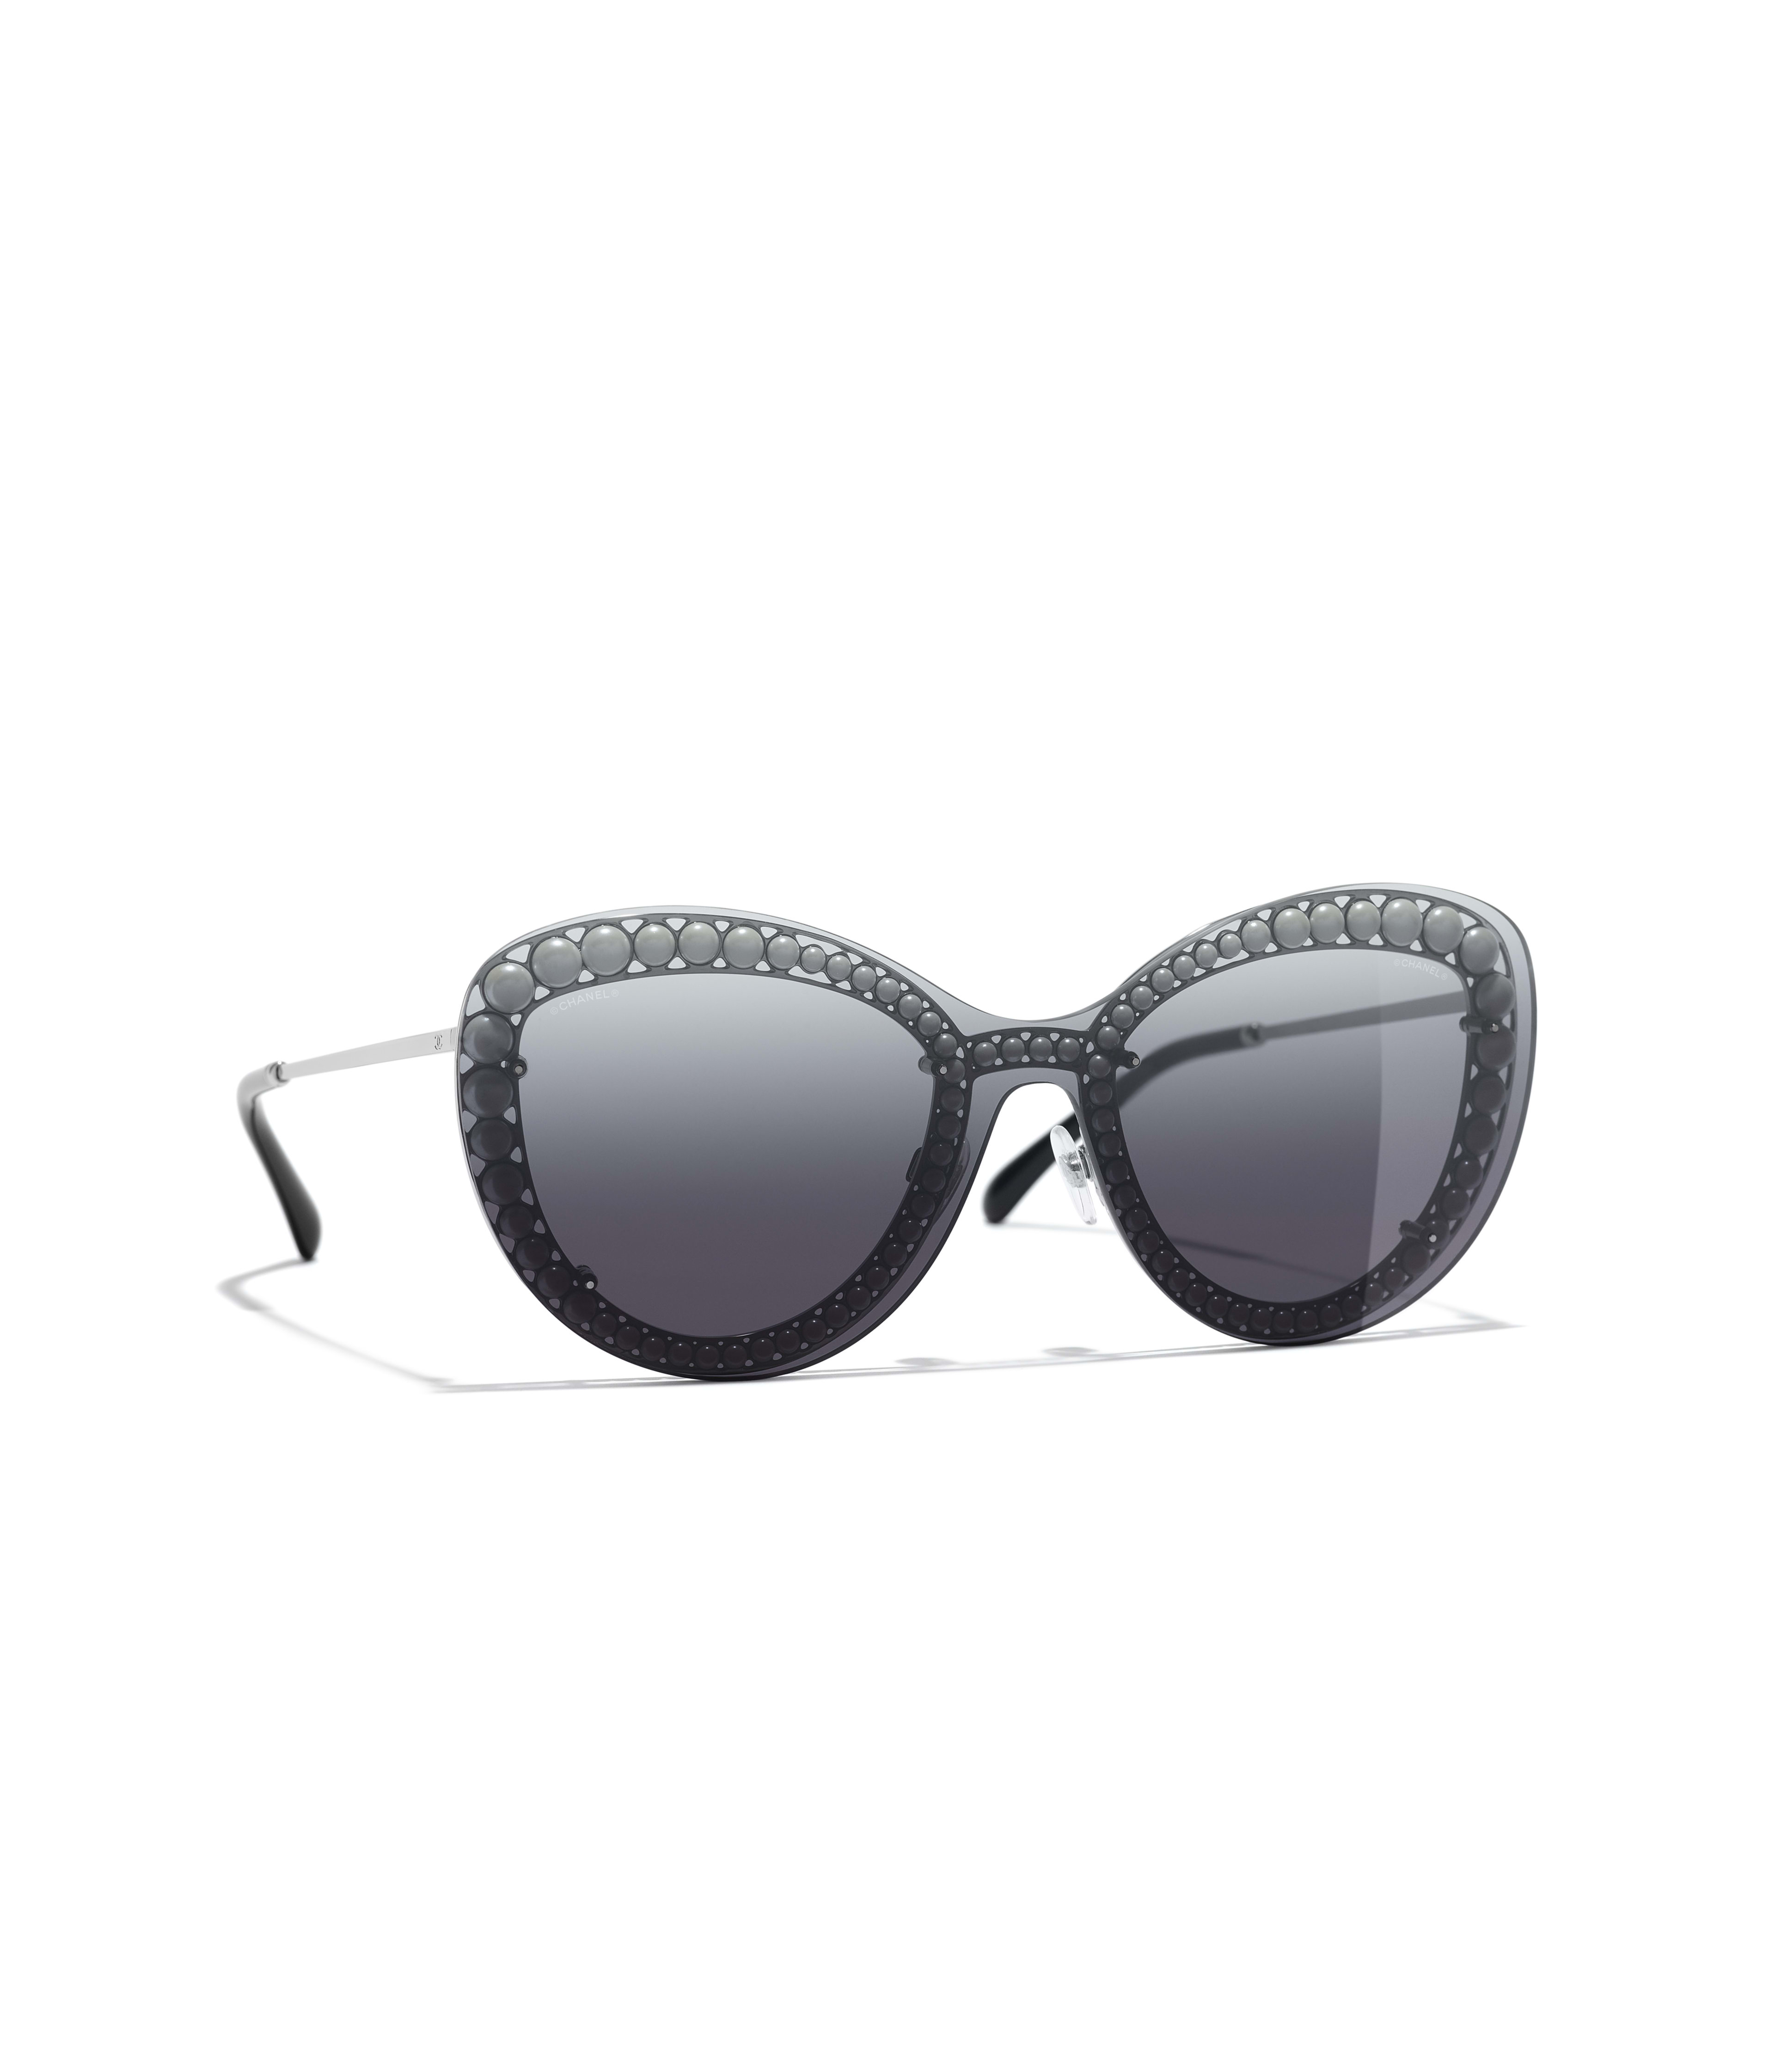 f85e77e6e929 Butterfly Sunglasses Black   Gold eyewear